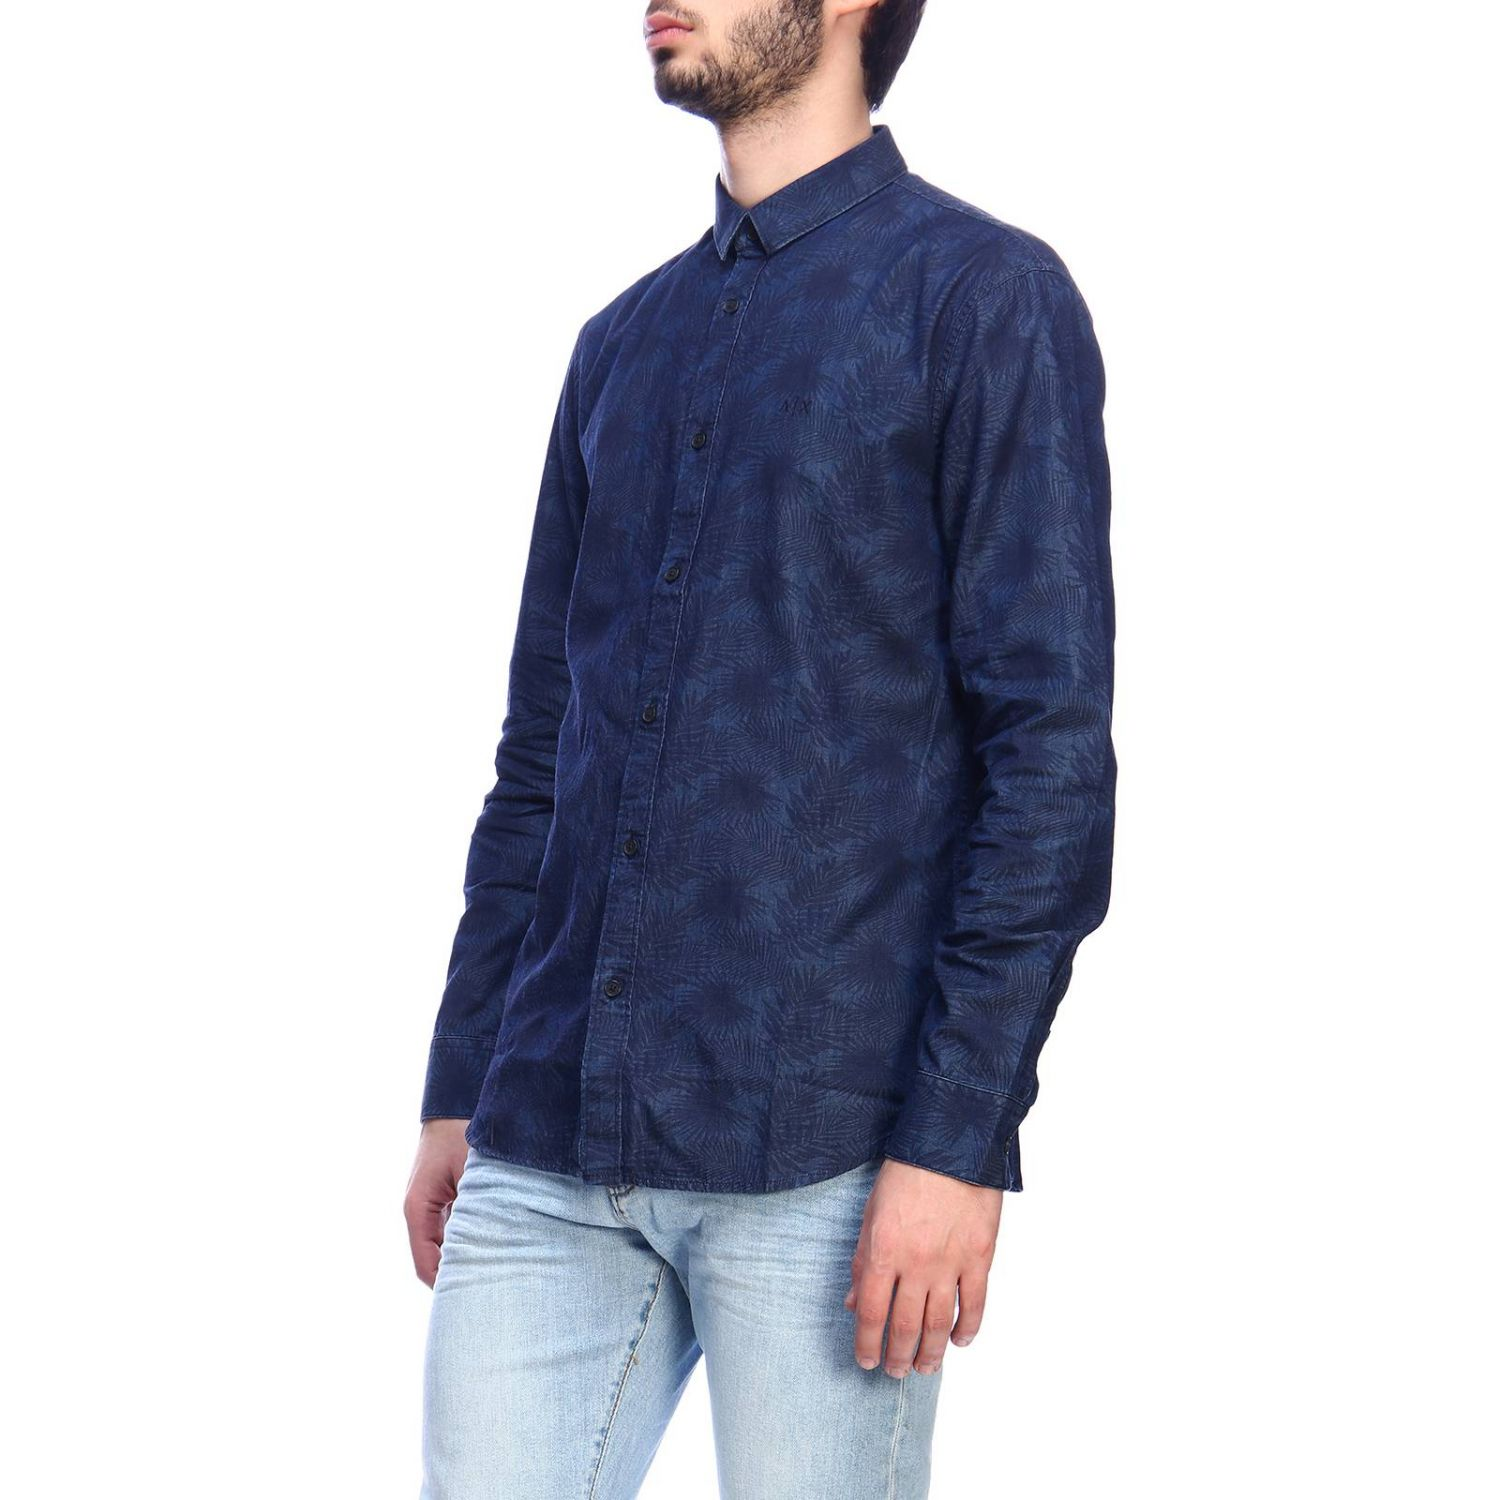 Camicia Armani Exchange in cotone con stampa di foglie e collo italiano blue 2